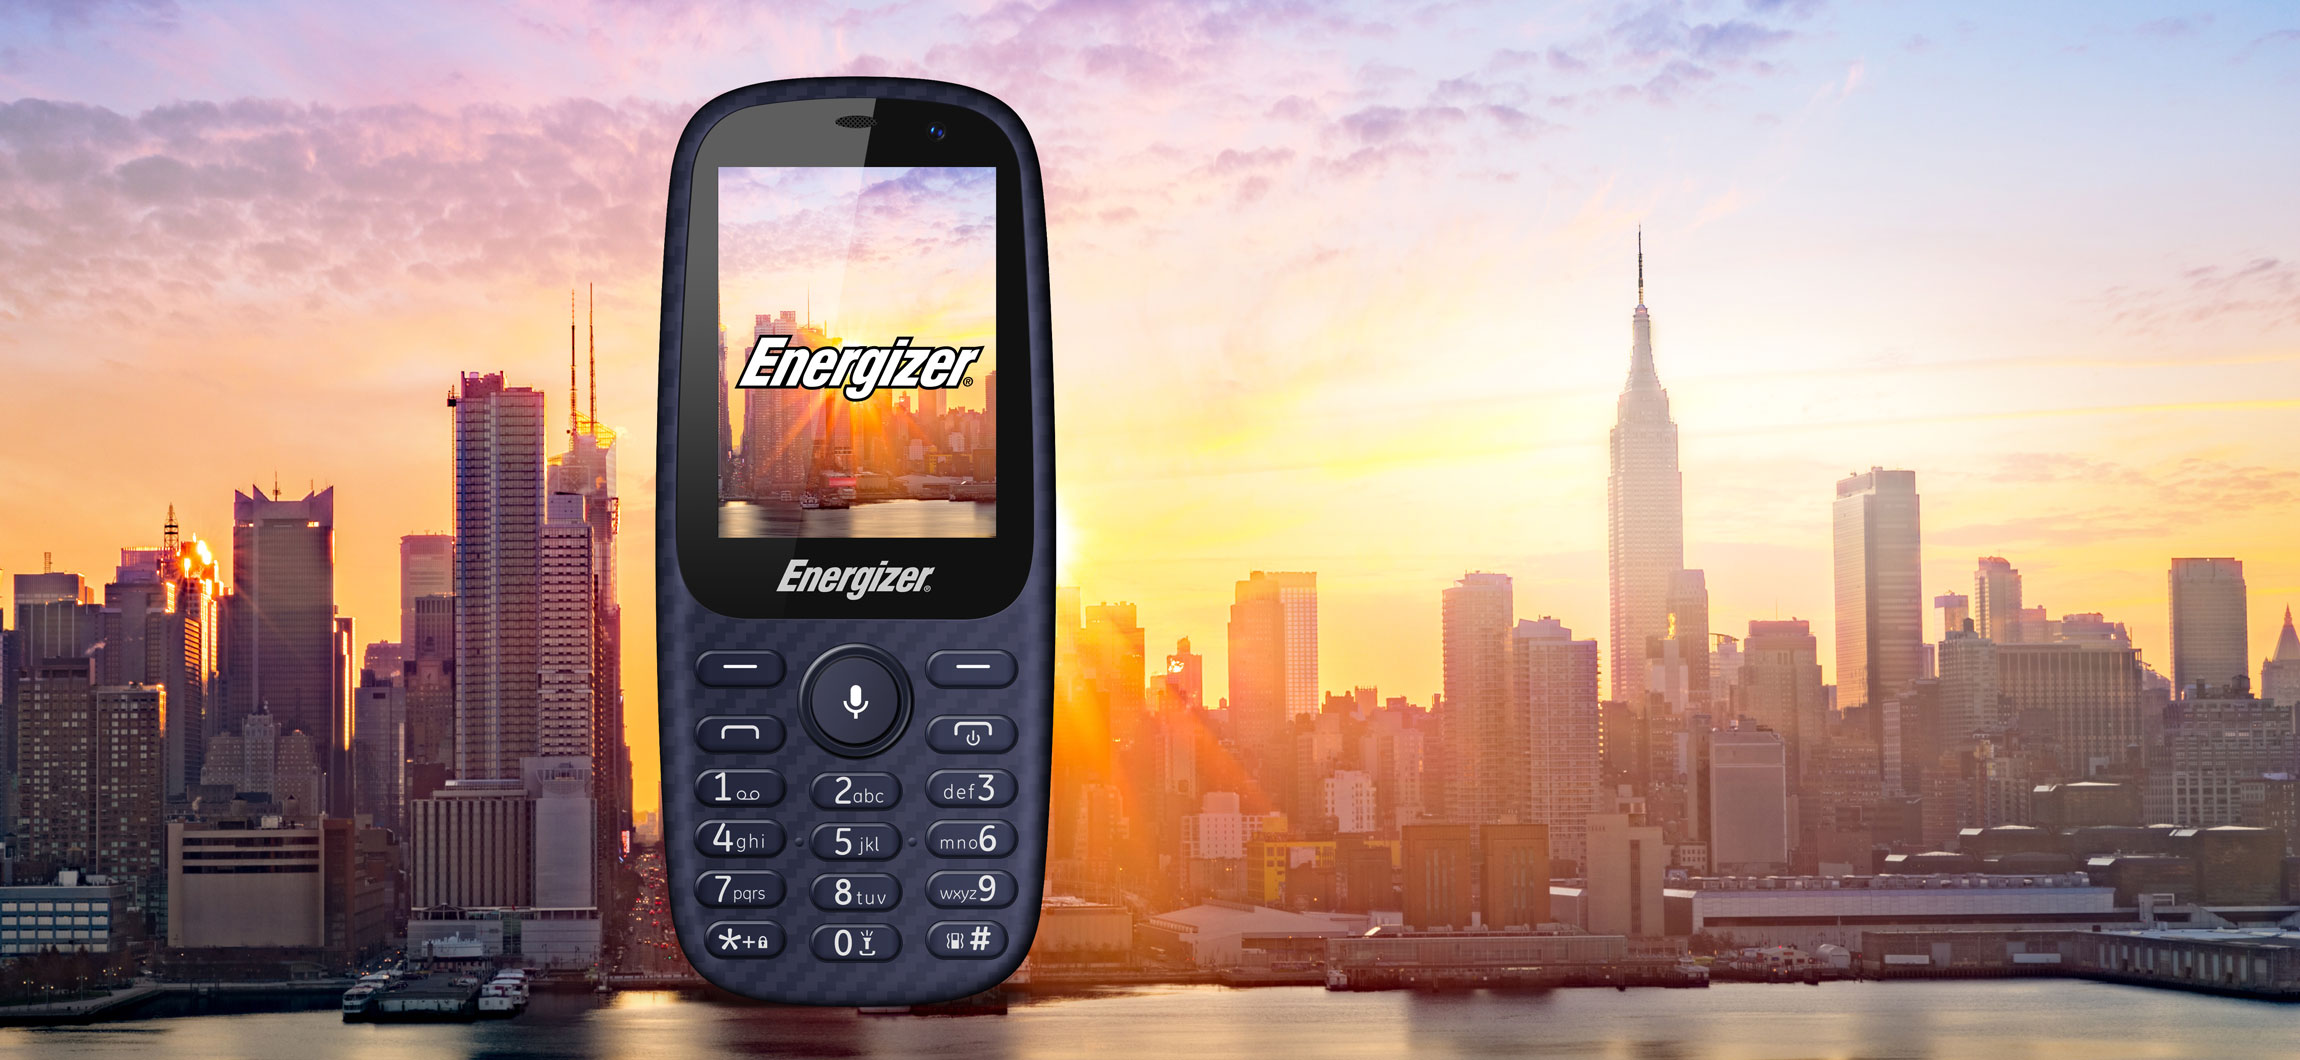 Energizer Mobile: Product